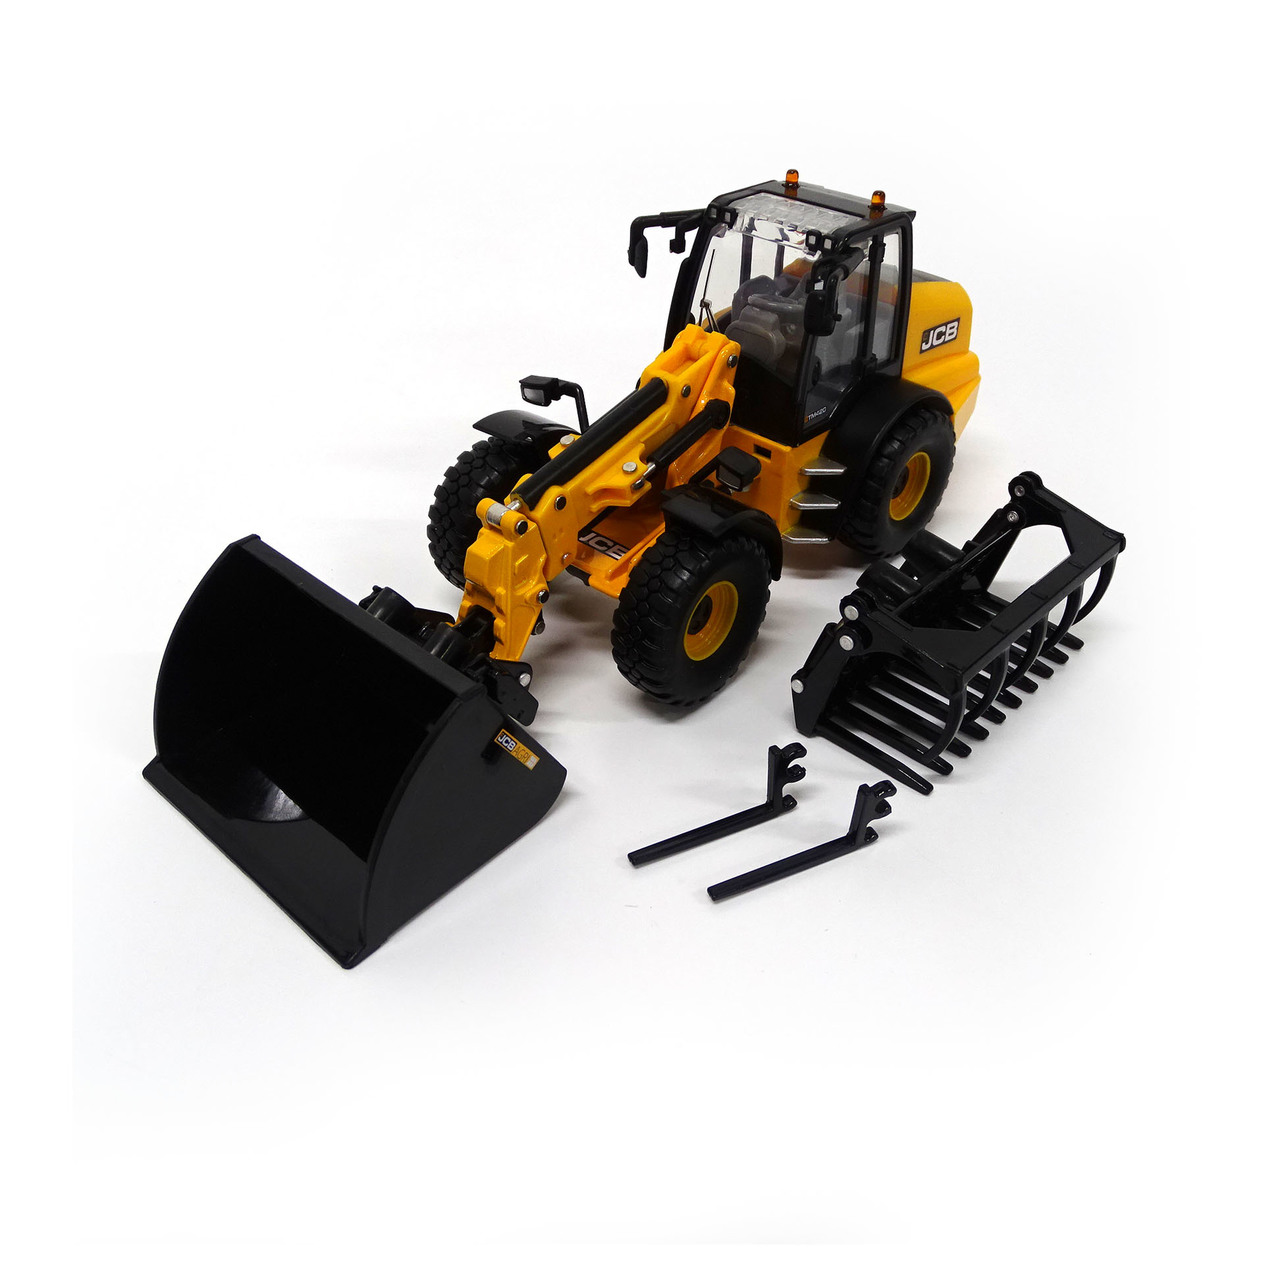 JCB TM420 Loader